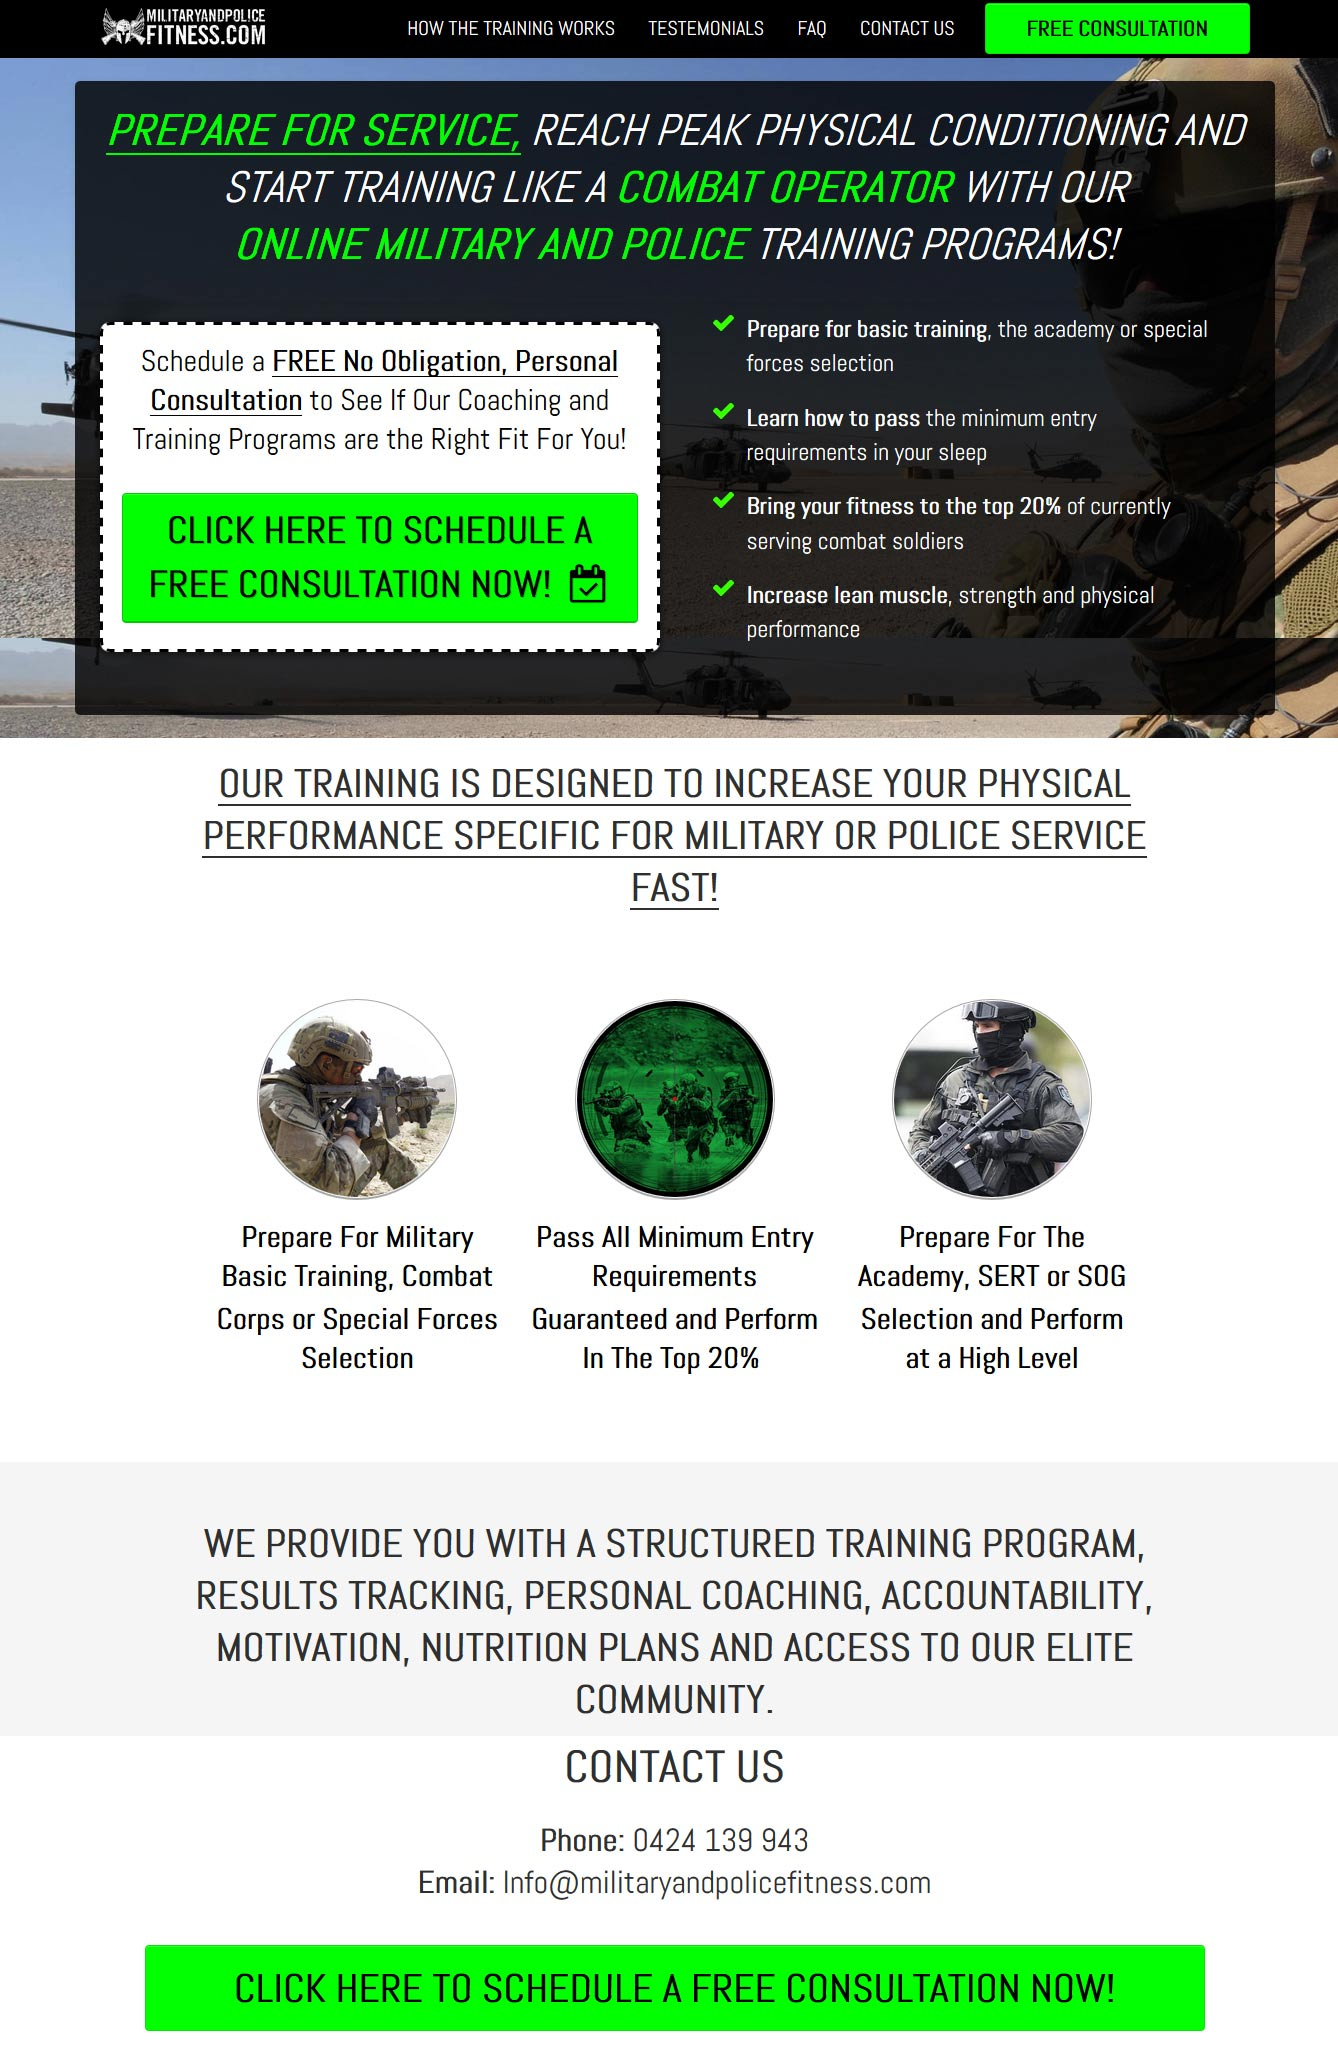 military-training-website-clickfunnels